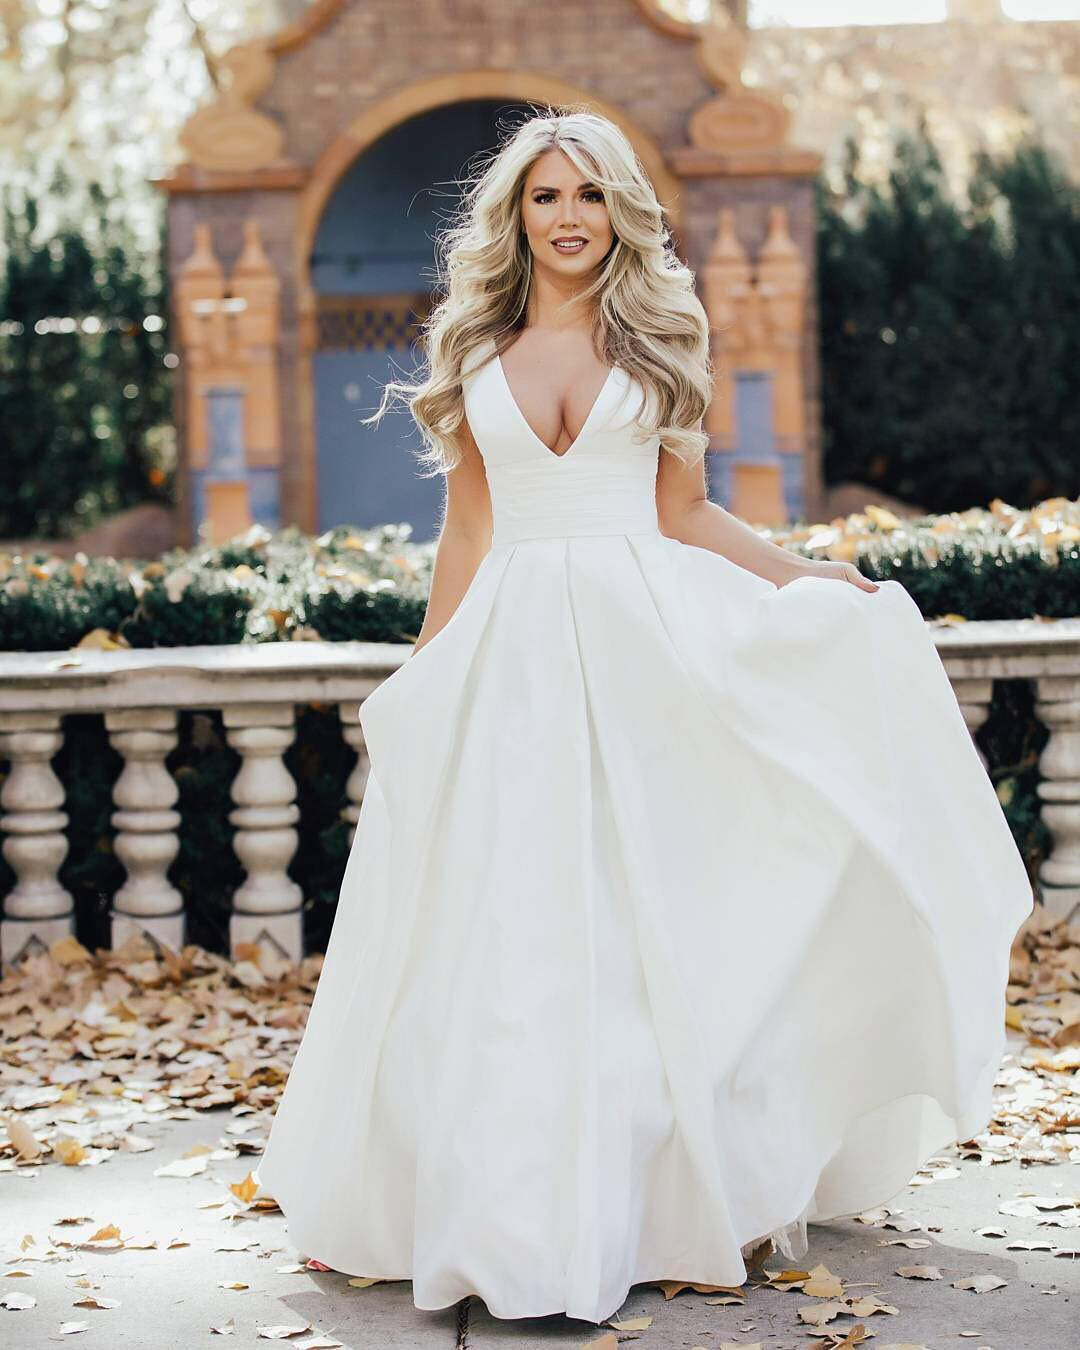 Bride in a plunging V-neck ball gown in a garden setting.